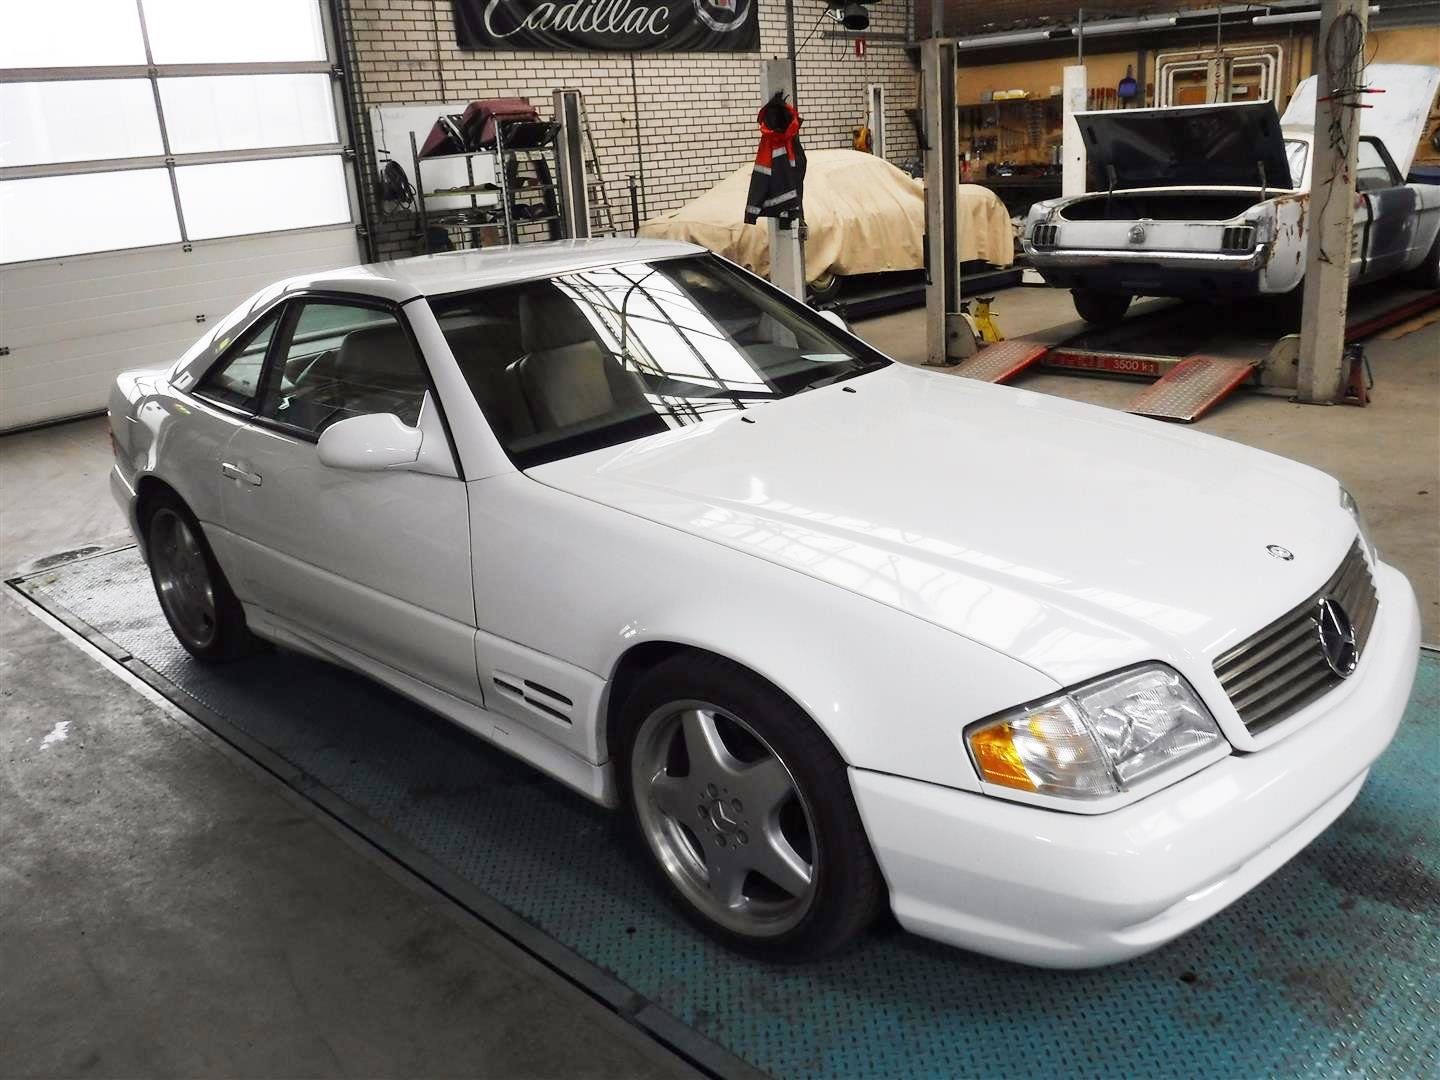 2000 Mercedes Benz 500SL For Sale (picture 2 of 6)